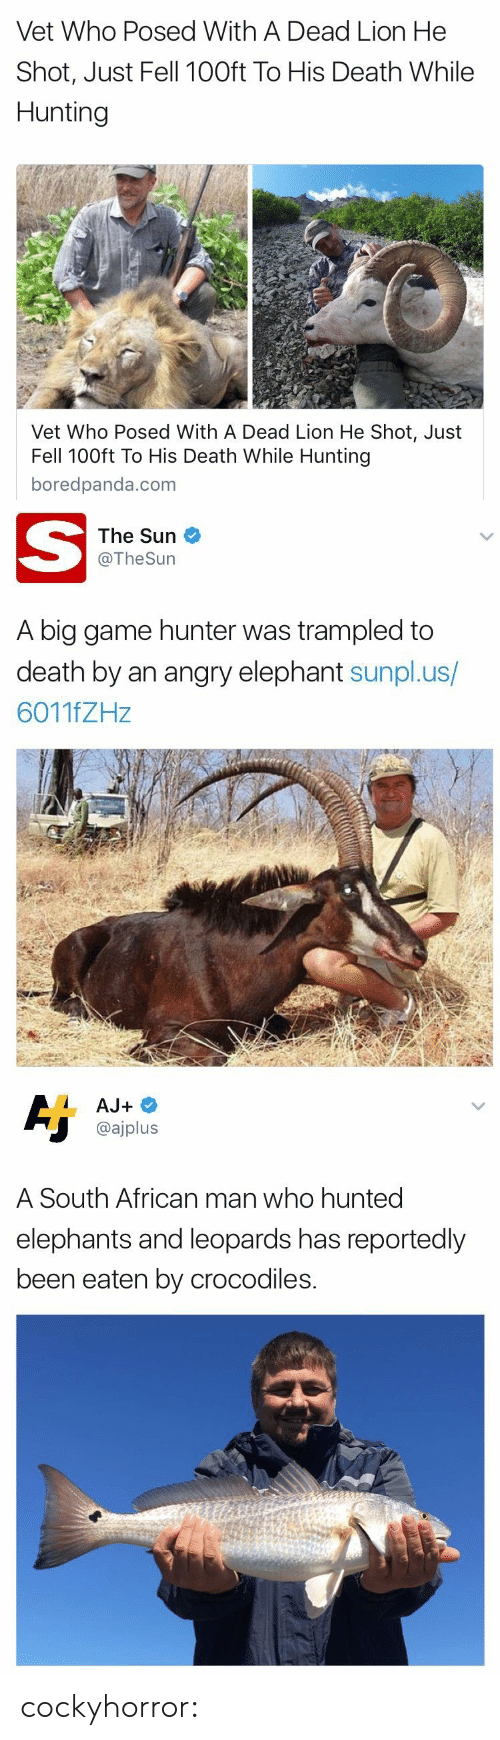 Gif, Target, and Tumblr: Vet Who Posed With A Dead Lion He  Shot, Just Fell 100ft To His Death While  Hunting  Vet Who Posed With A Dead Lion He Shot, Just  Fell 100ft To His Death While Hunting  boredpanda.com   The Sun  @TheSurn  A big game hunter was trampled to  death by an angry elephant sunpl.us/  6011fZHz   @ajplus  A South African man who hunted  elephants and leoparas has reportedly  been eaten by crocodiles. cockyhorror: